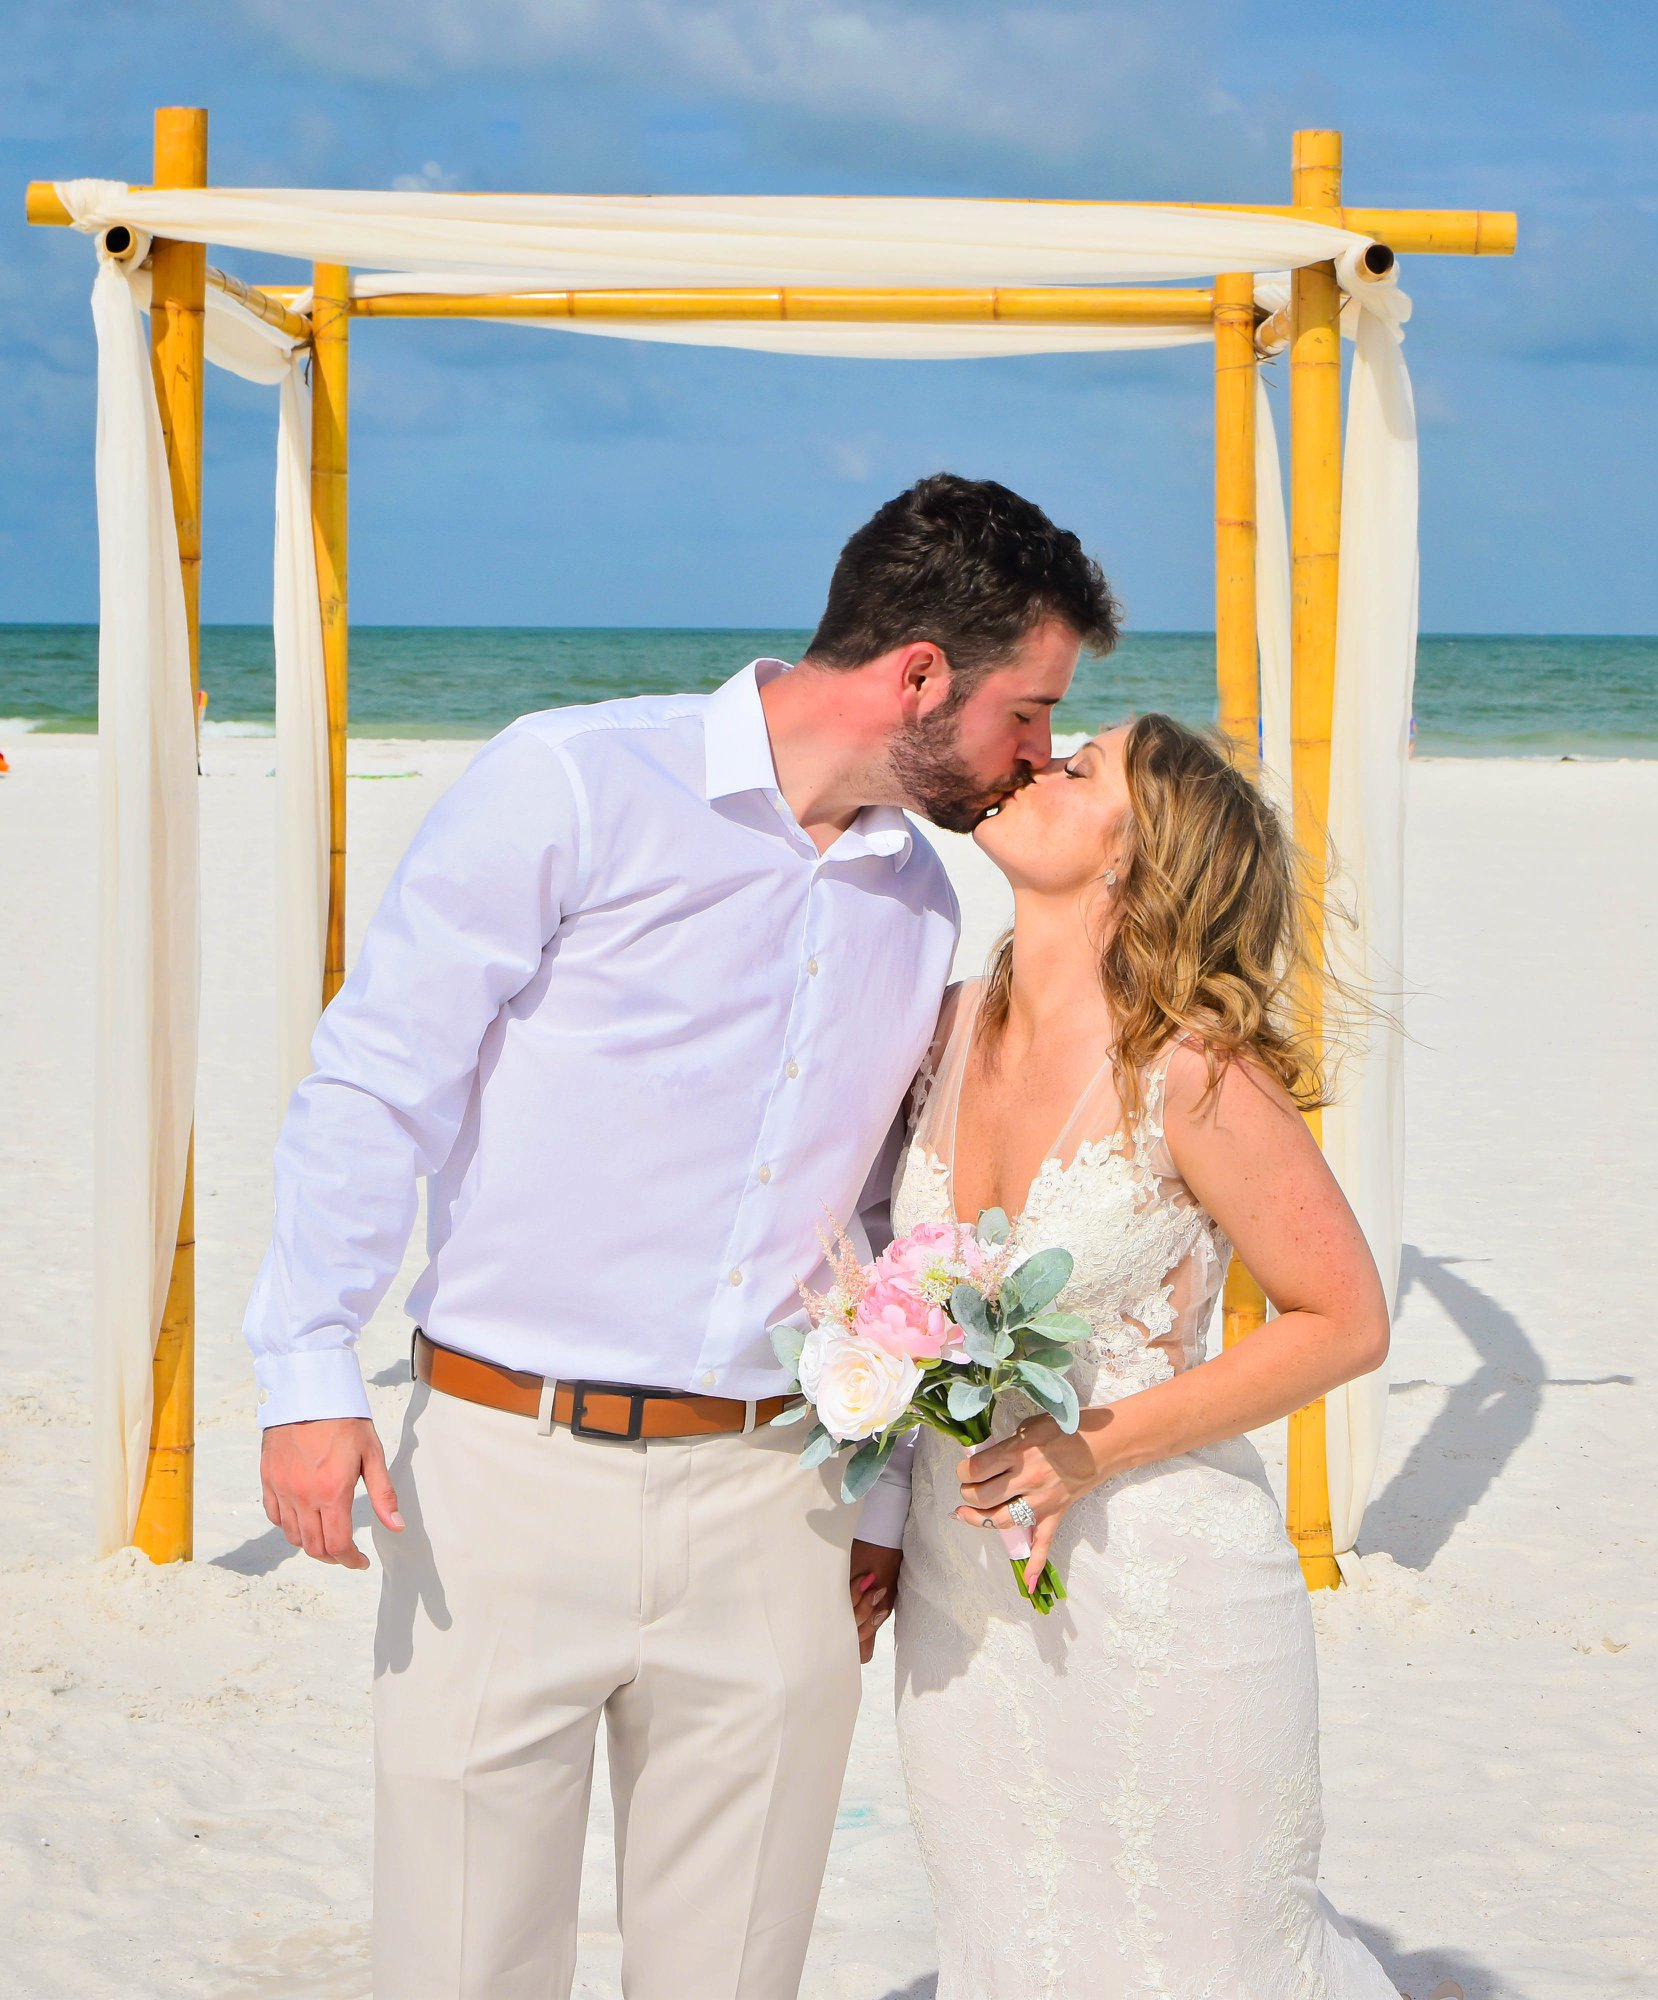 Couple kisses after renewing vows on Daytona Beach